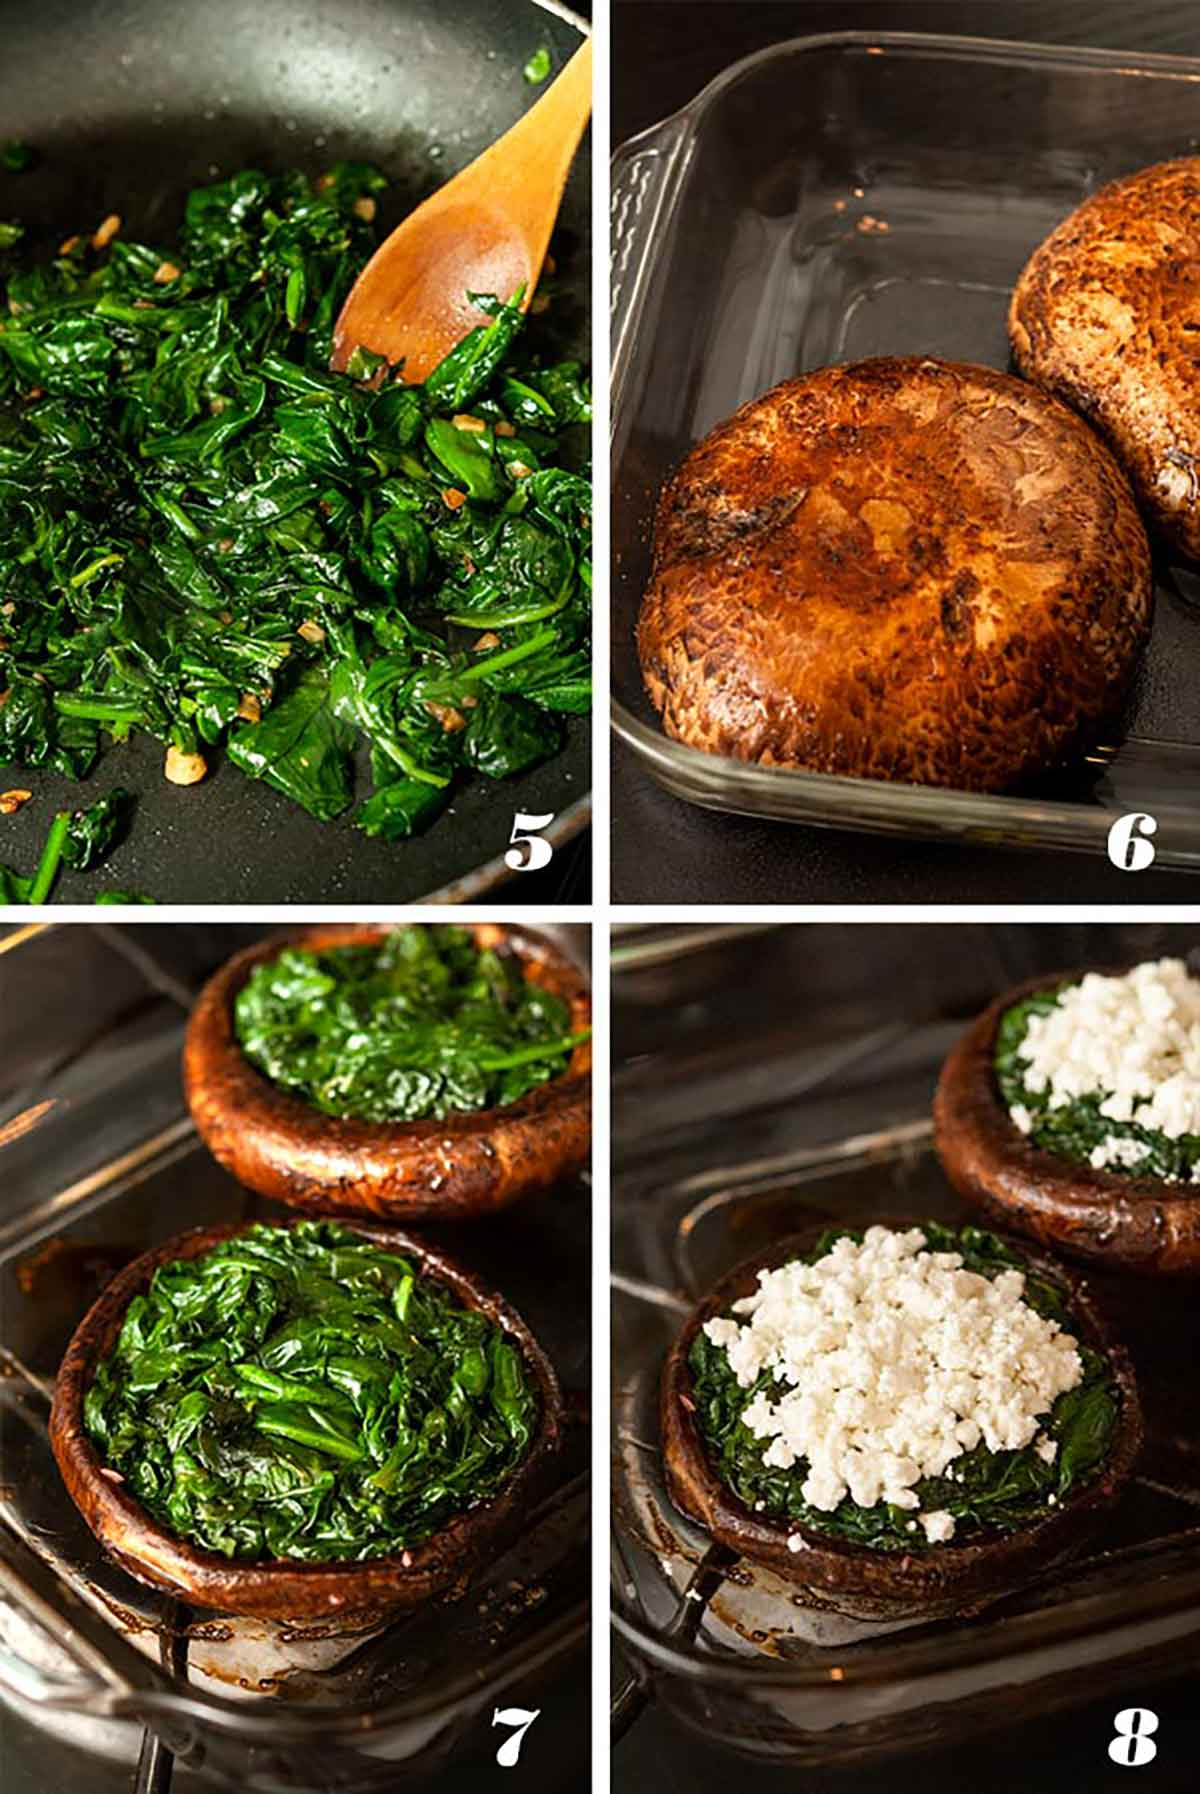 A collage of 4 numbered images showing how to make stuffed portobello mushrooms.